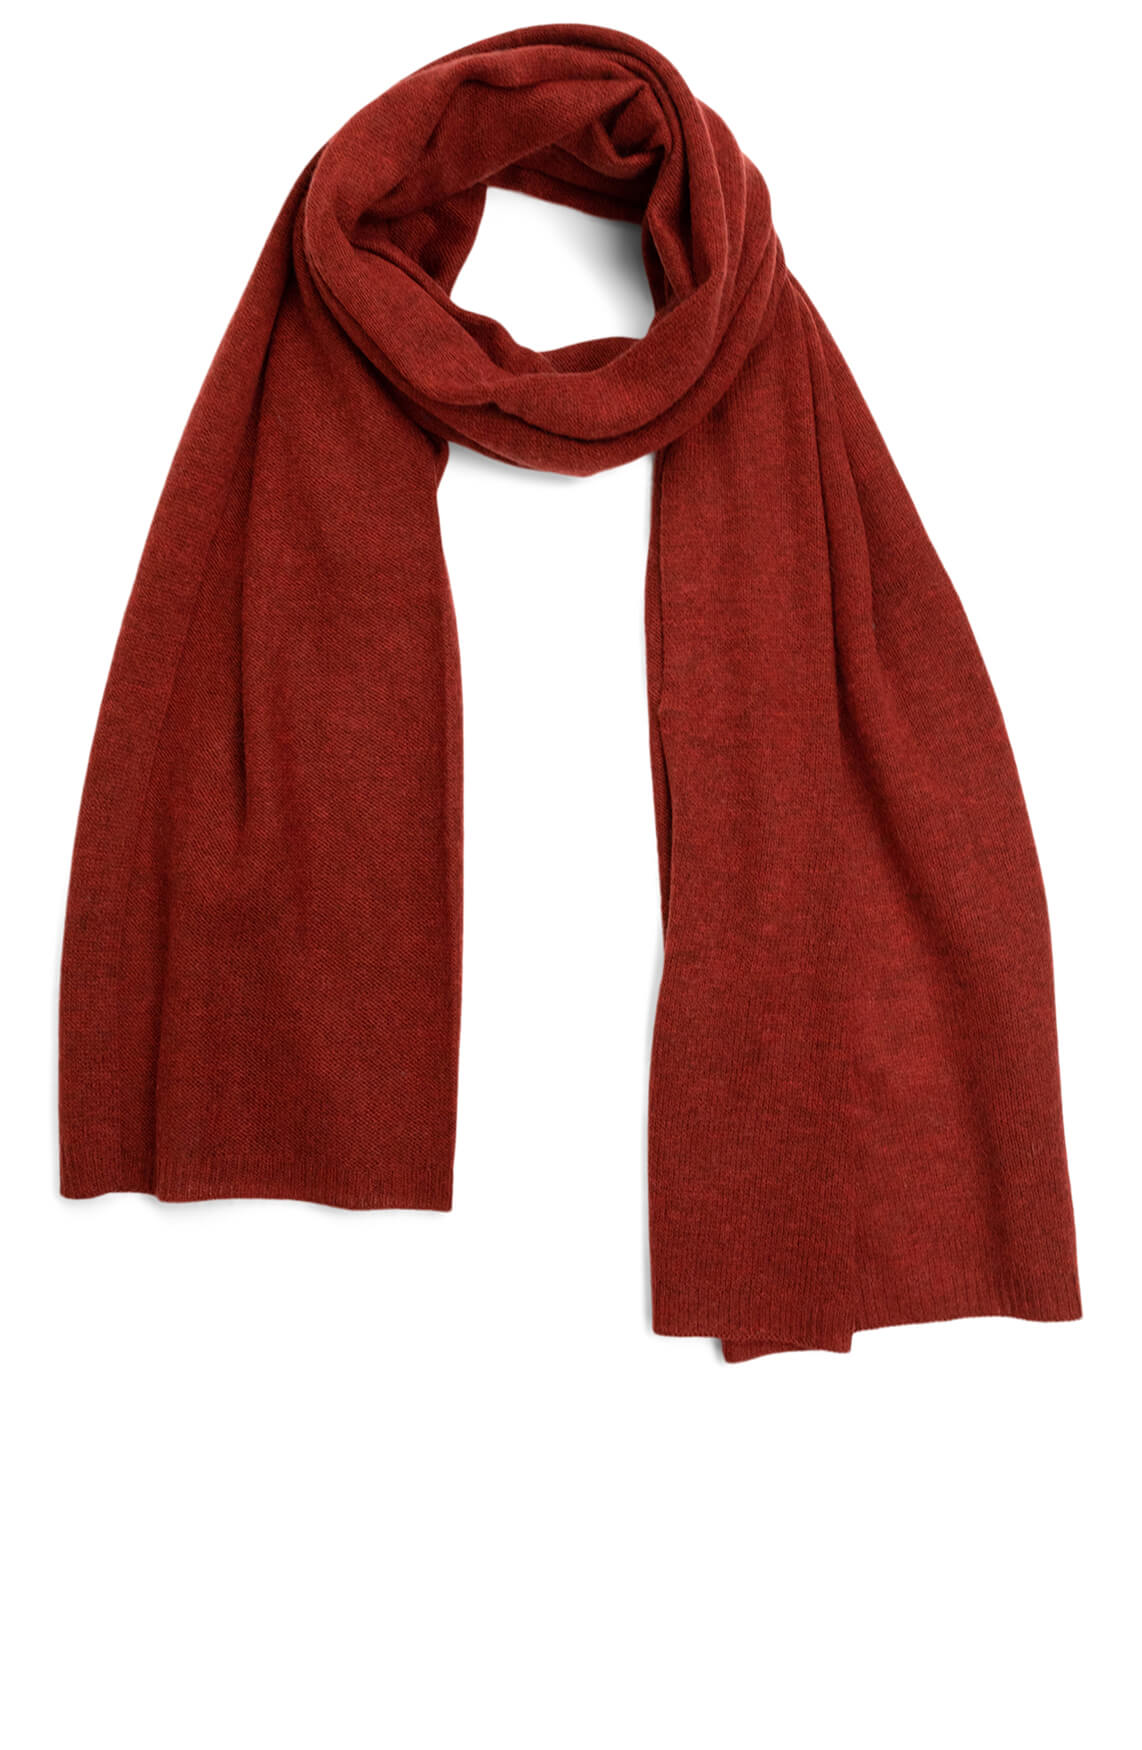 By Happy Sweater Dames Lina shawl Rood